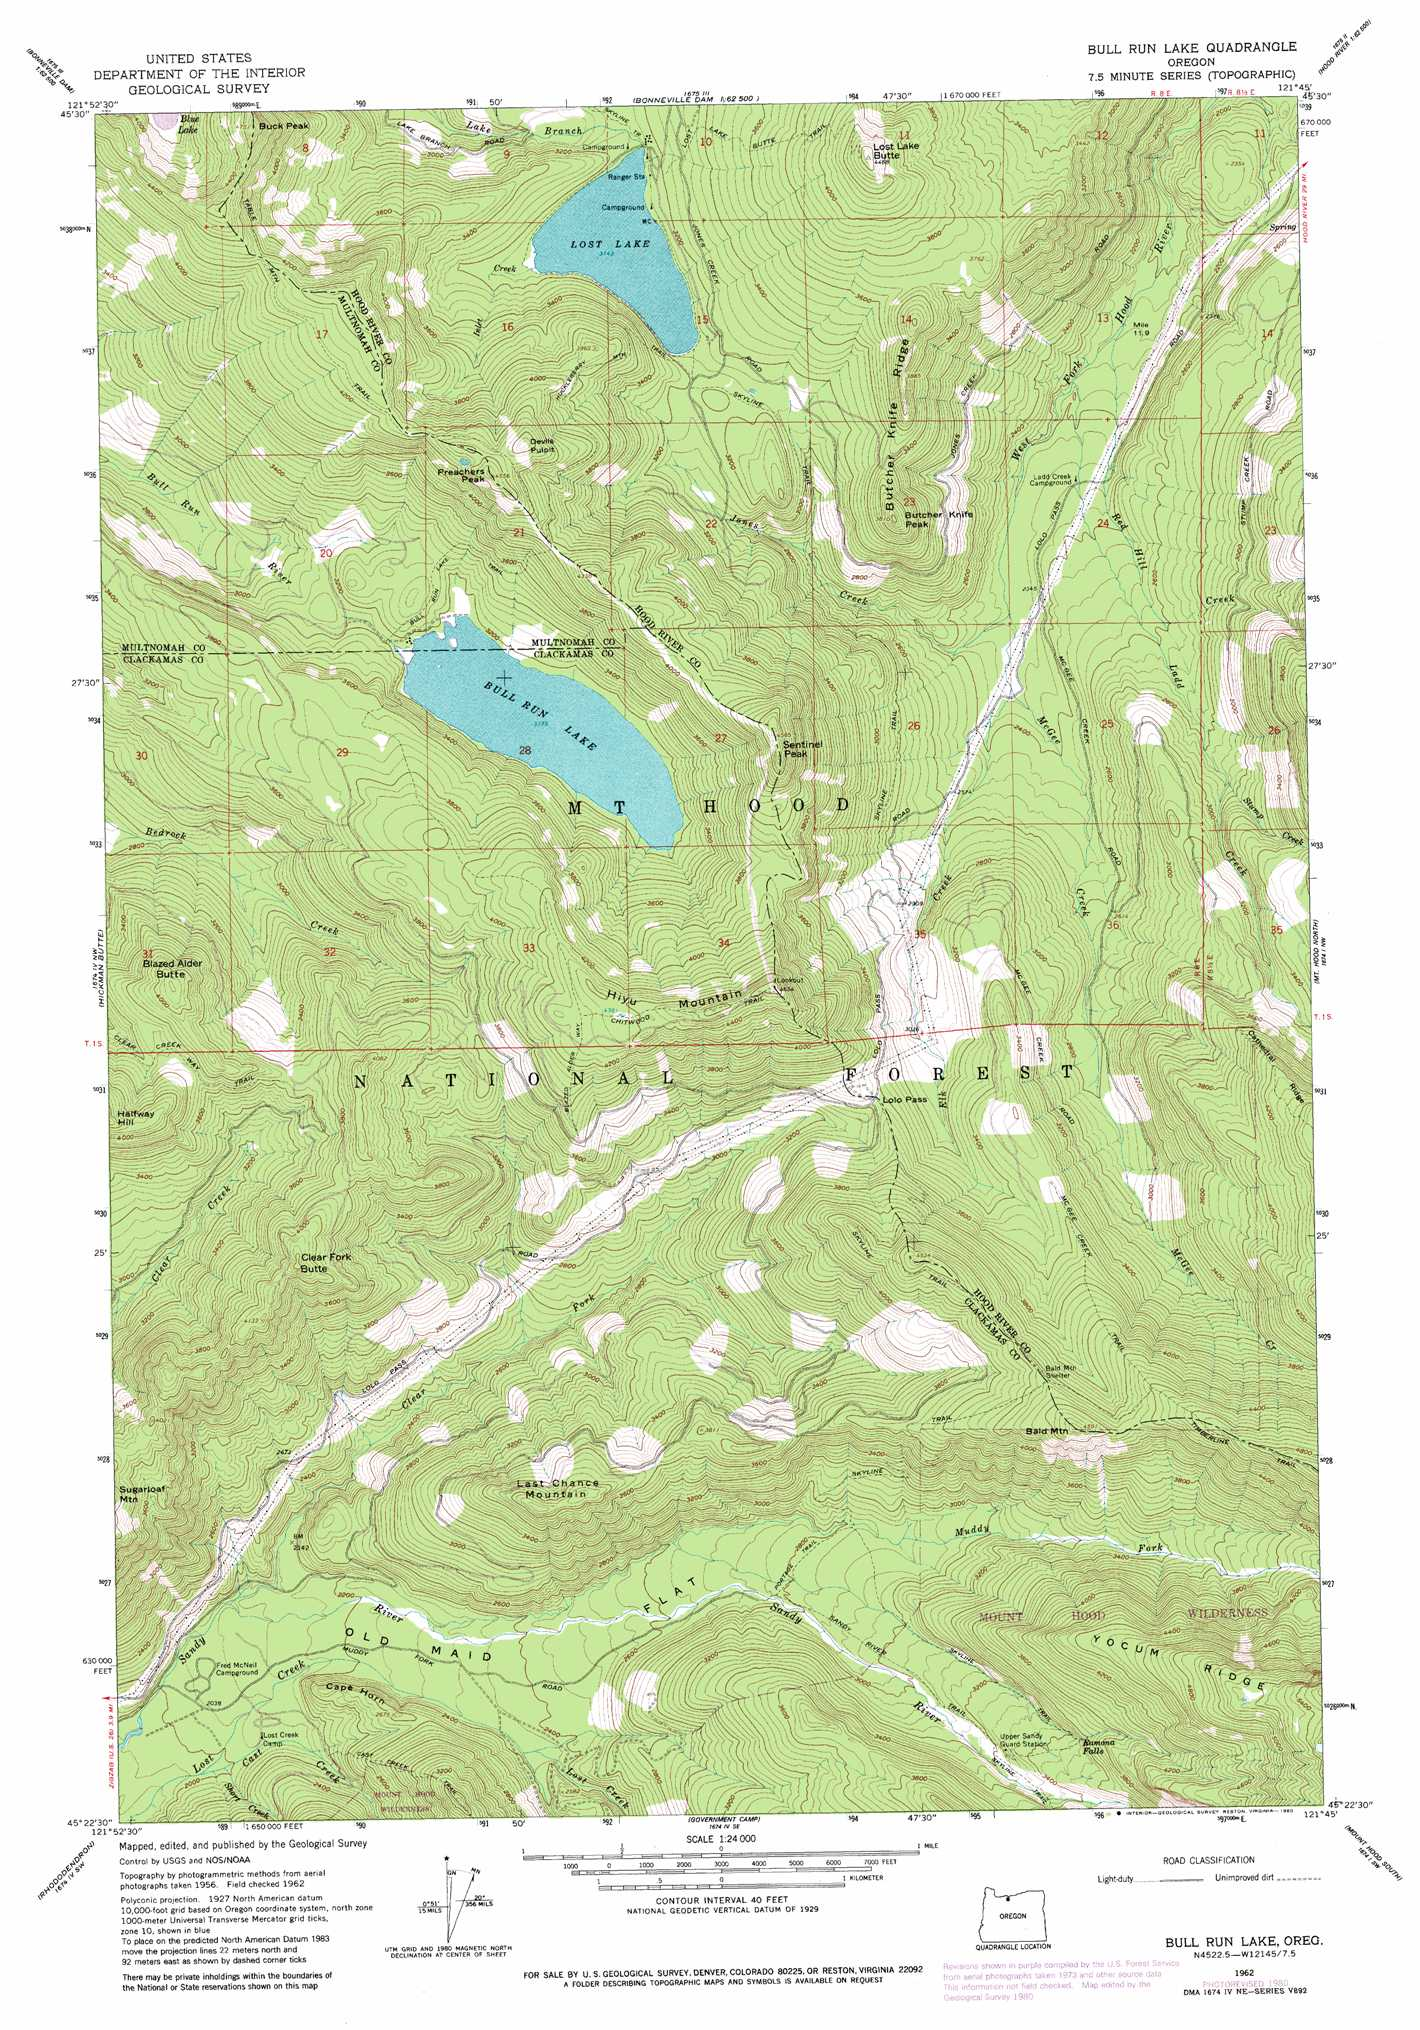 Bull Run Lake Topographic Map Or Usgs Topo Quad 45121d7